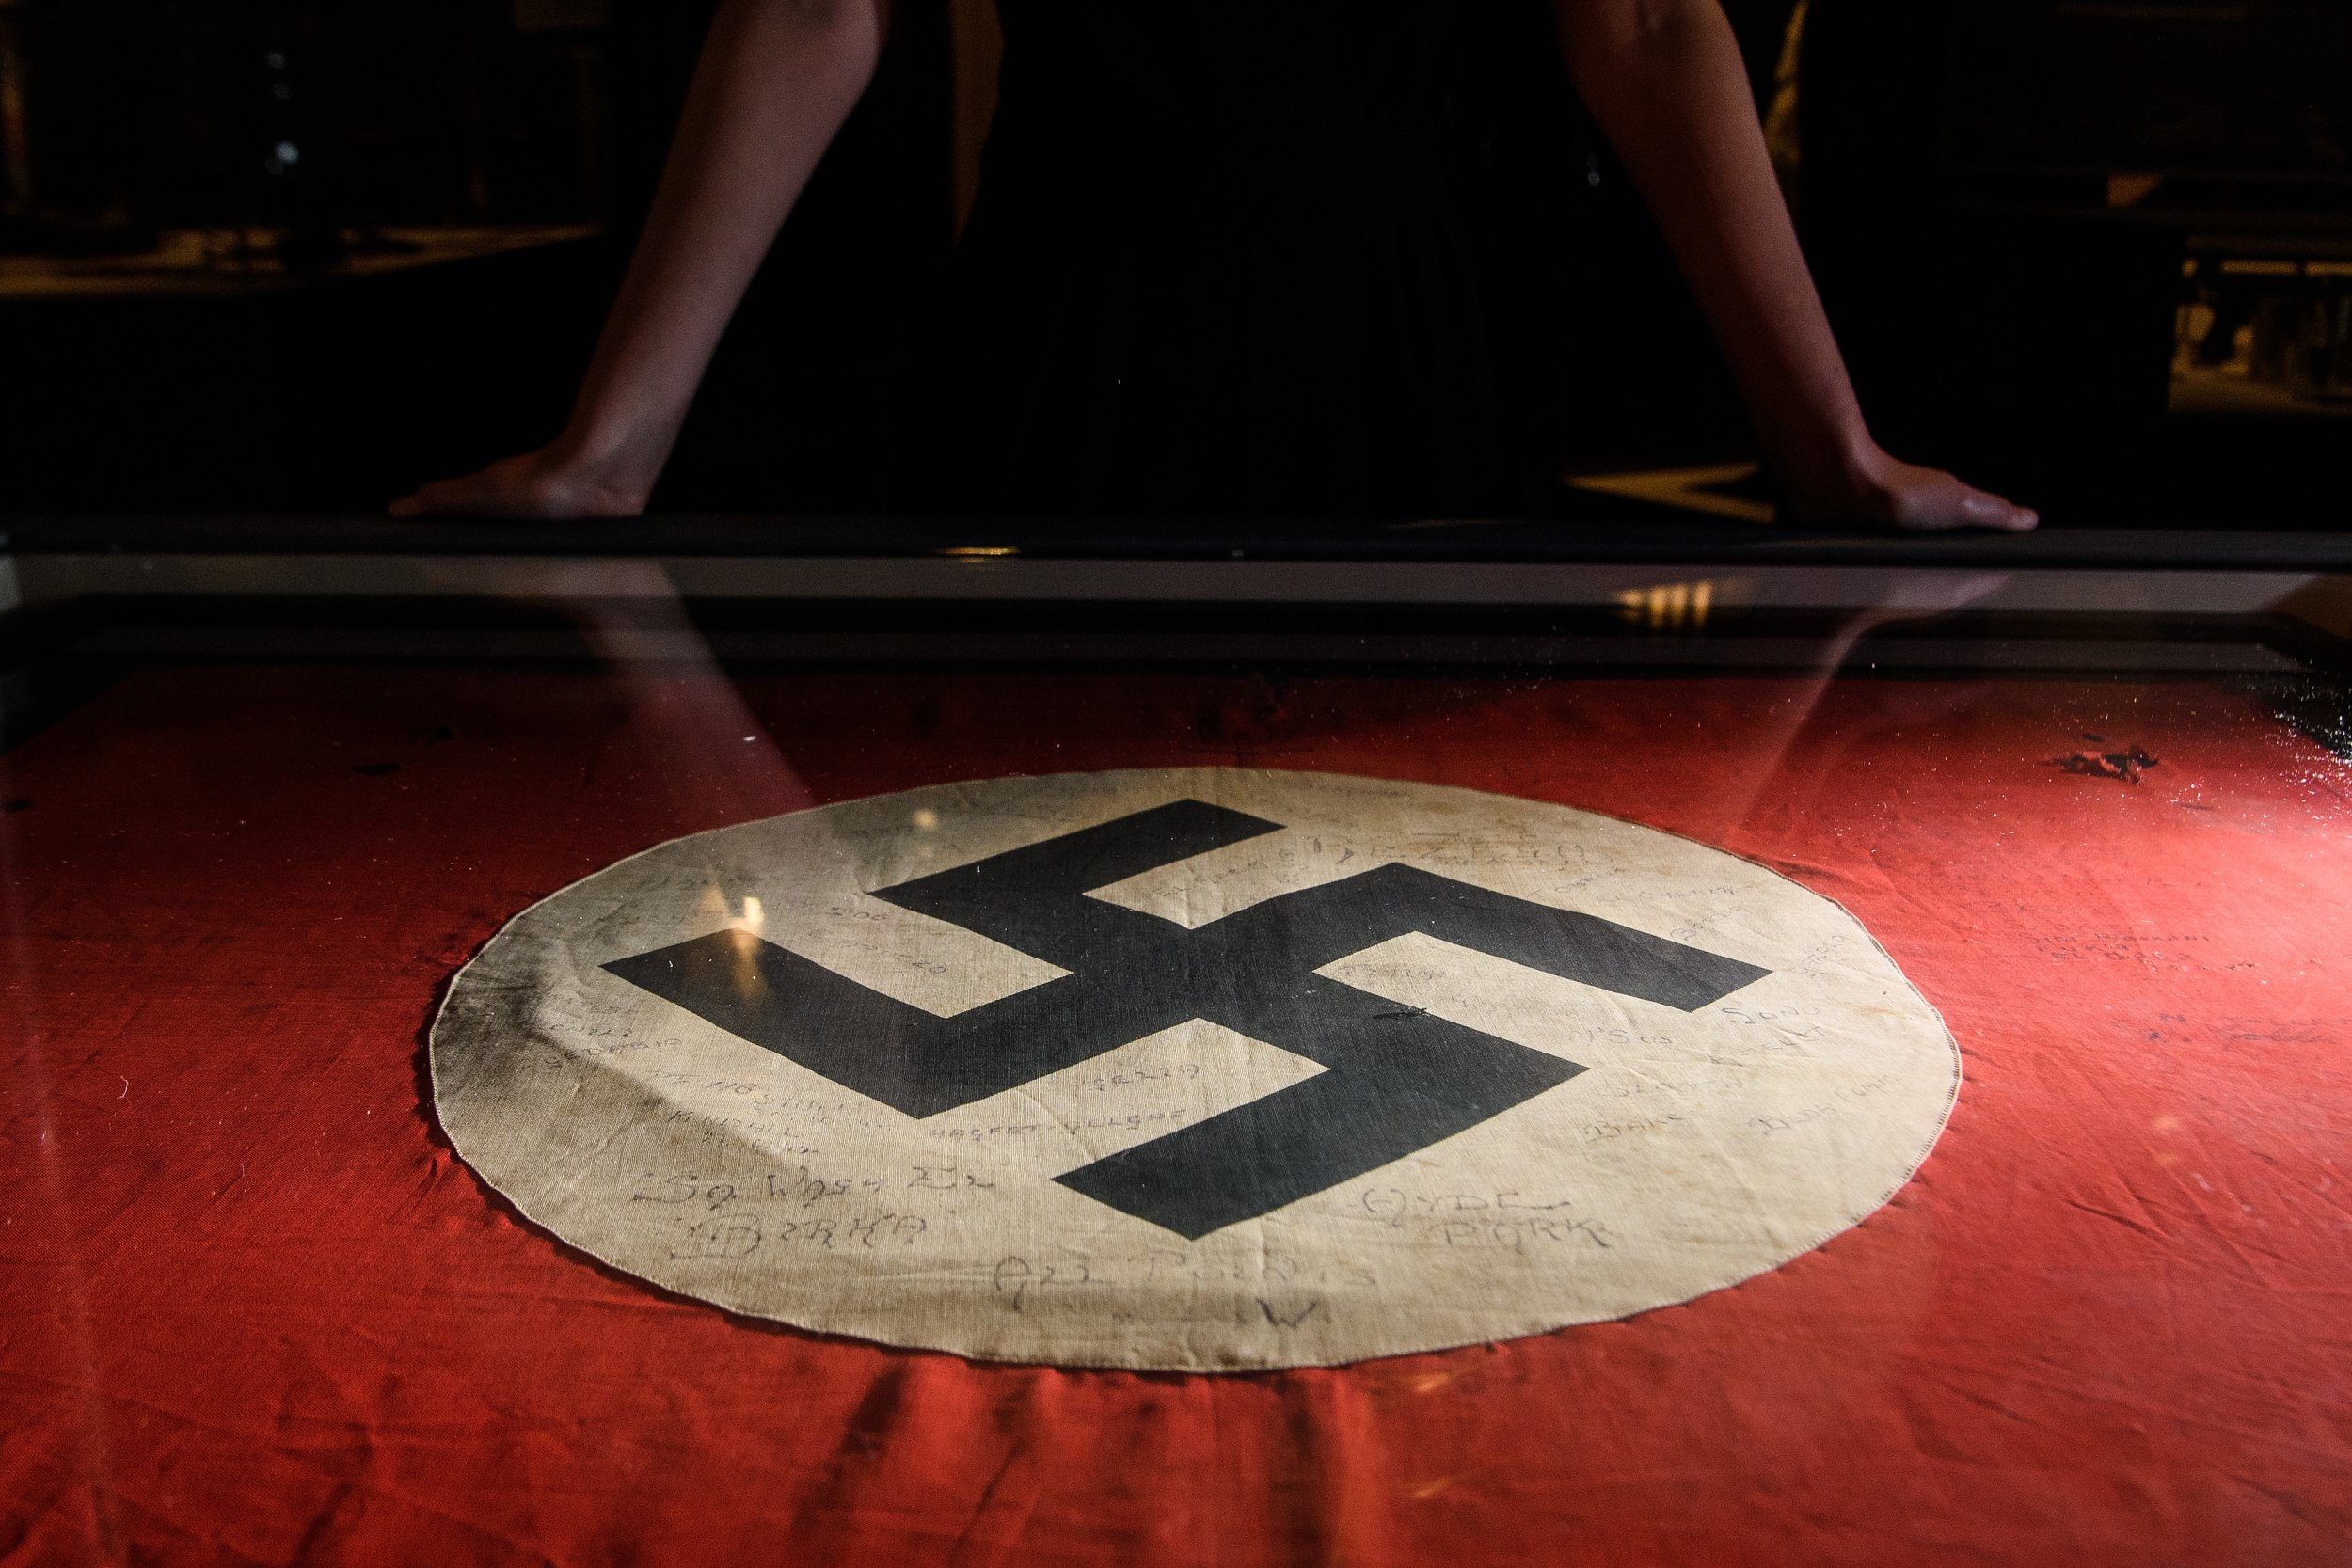 university of wisconsin jewish israel swastika